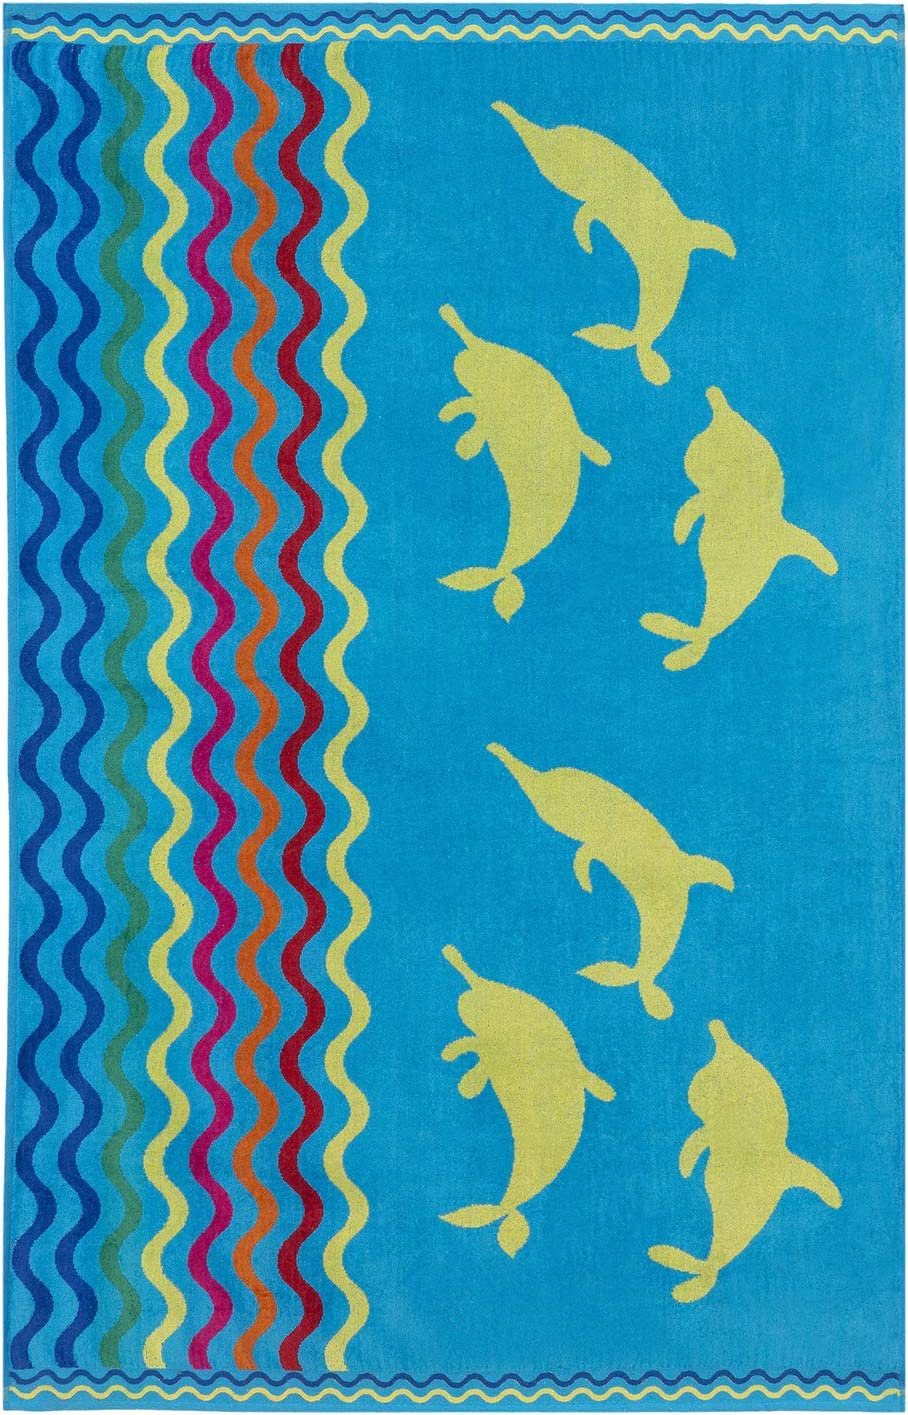 Espalma Oversized Luxury Dolphin Stripe Beach Towel, Large Size 70 Inch x 40 Inch Soft Velour and Reversible Absorbent Cotton Terry, Thick and Plush Jacquard Beach Towel, Dolphin Stripe